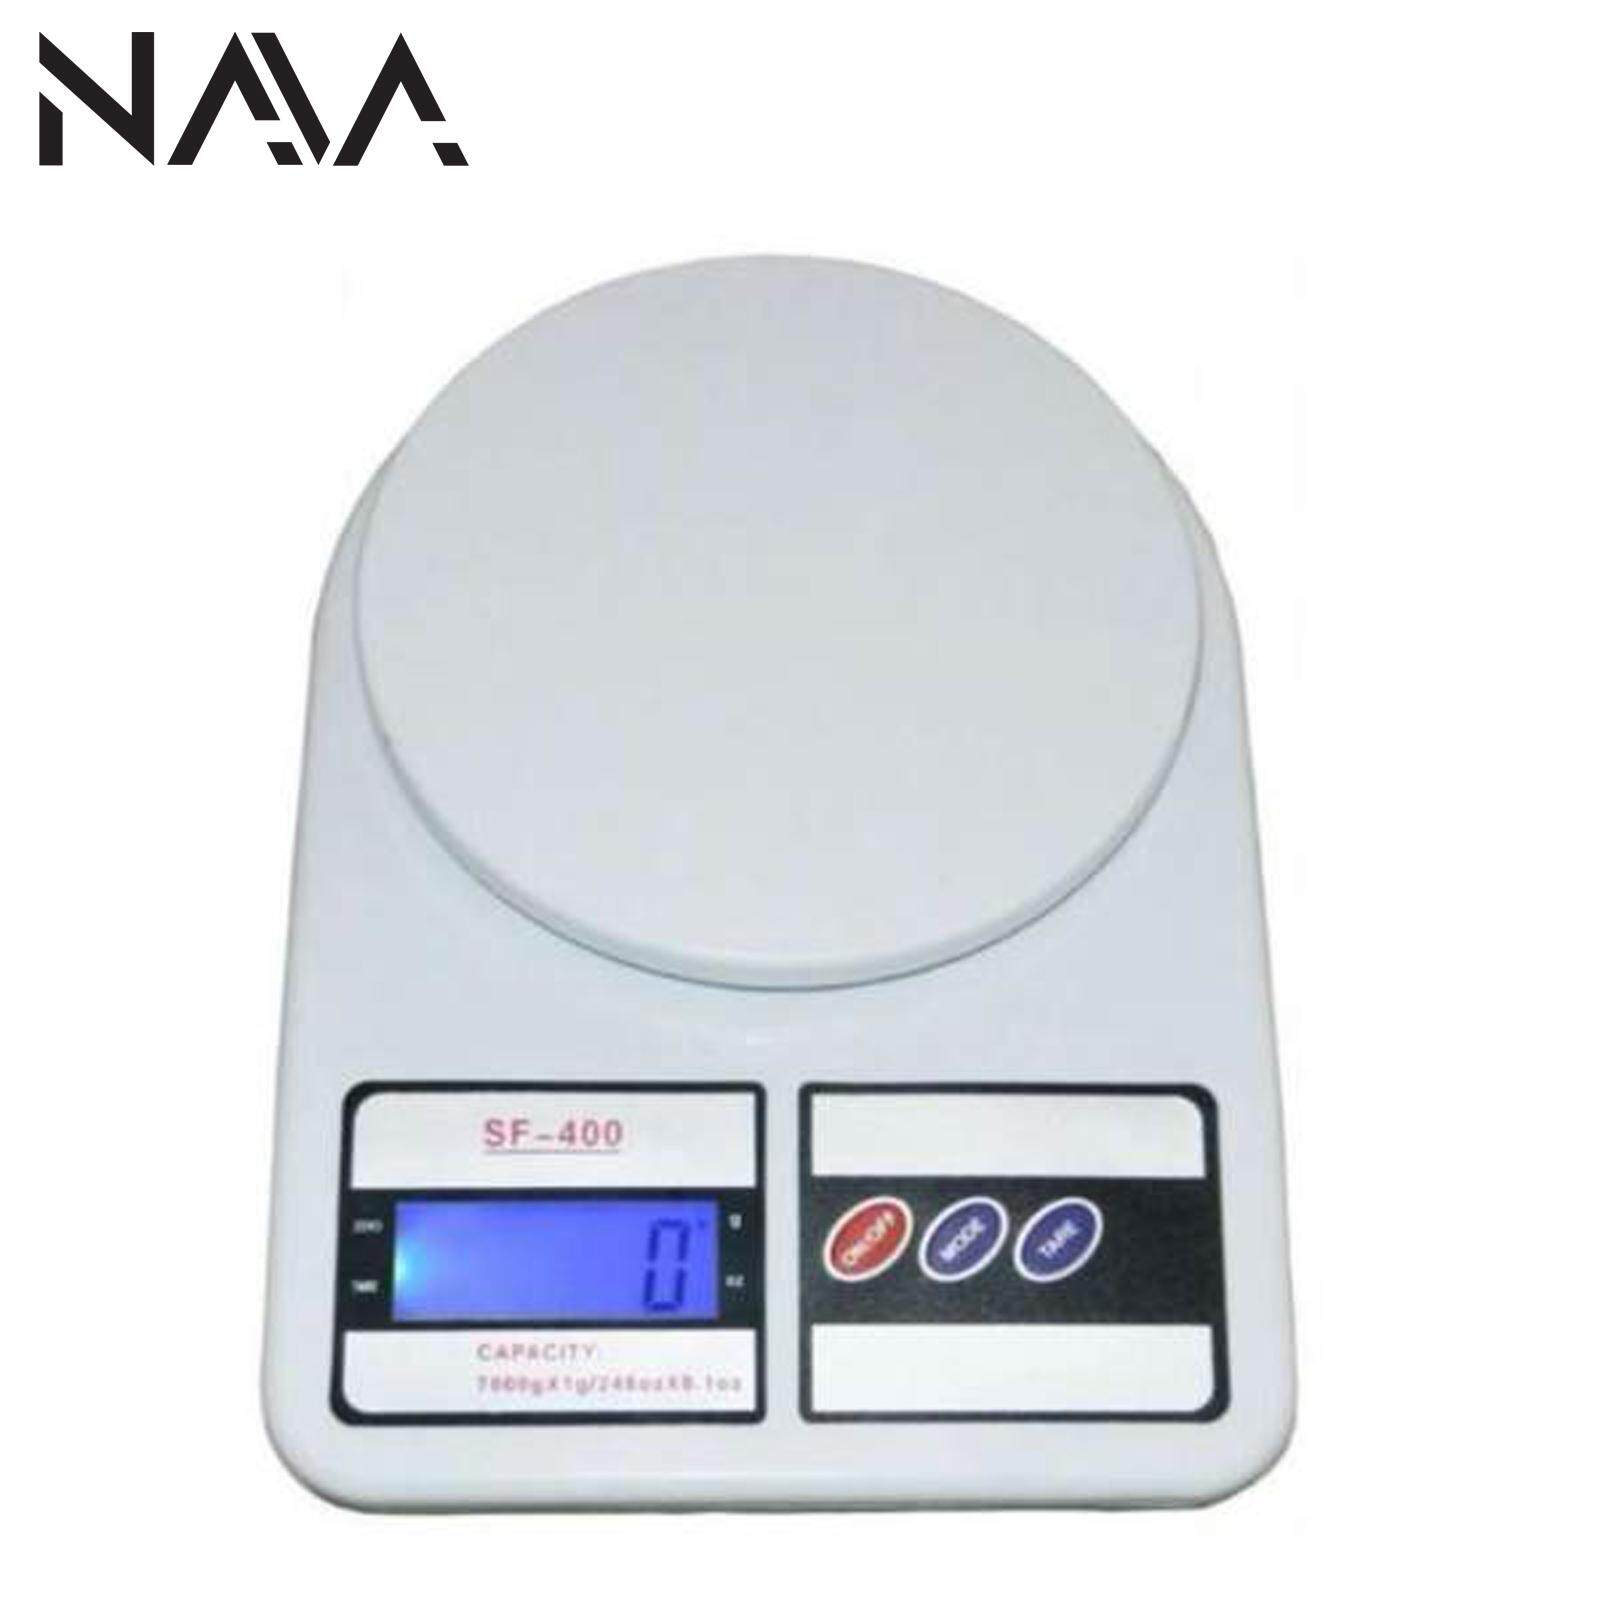 NaVa 10kg Digital Multi Function Kitchen and Food Scale (White)